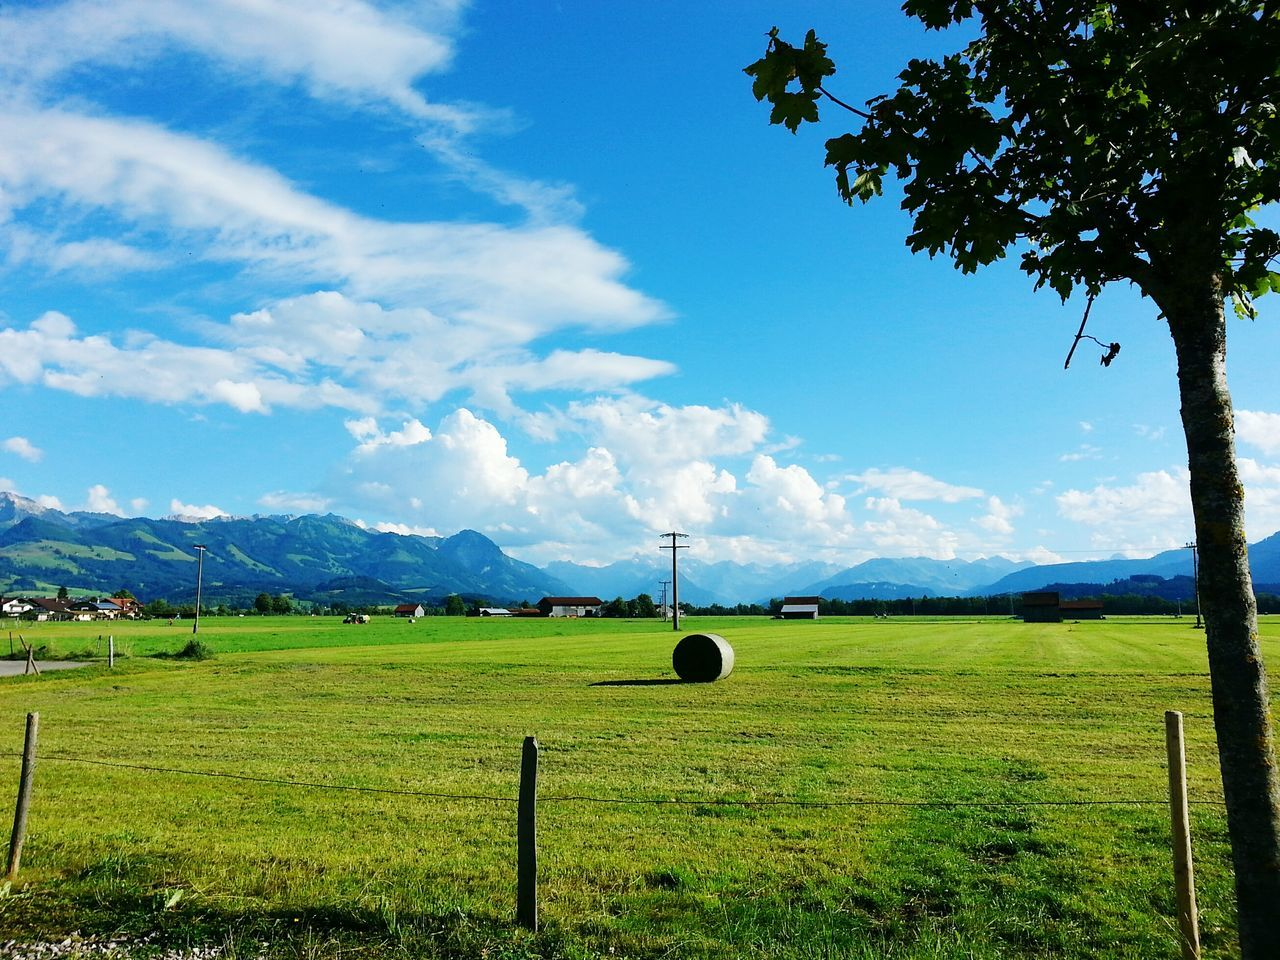 Alps Of The Allgaeu 🚞 Sky Cloud - Sky Rural Scene Agriculture Landscape Nature Beauty In Nature Tranquility No People Tranquil Scene Outdoors Tree Day Eco Tourism Fields Grassland Mountain Range Alps Wide Shot Idyllic Scenery Traveling EyeEmNewHere Hiking Adventures The Great Outdoors - 2017 EyeEm Awards Live For The Story Your Ticket To Europe